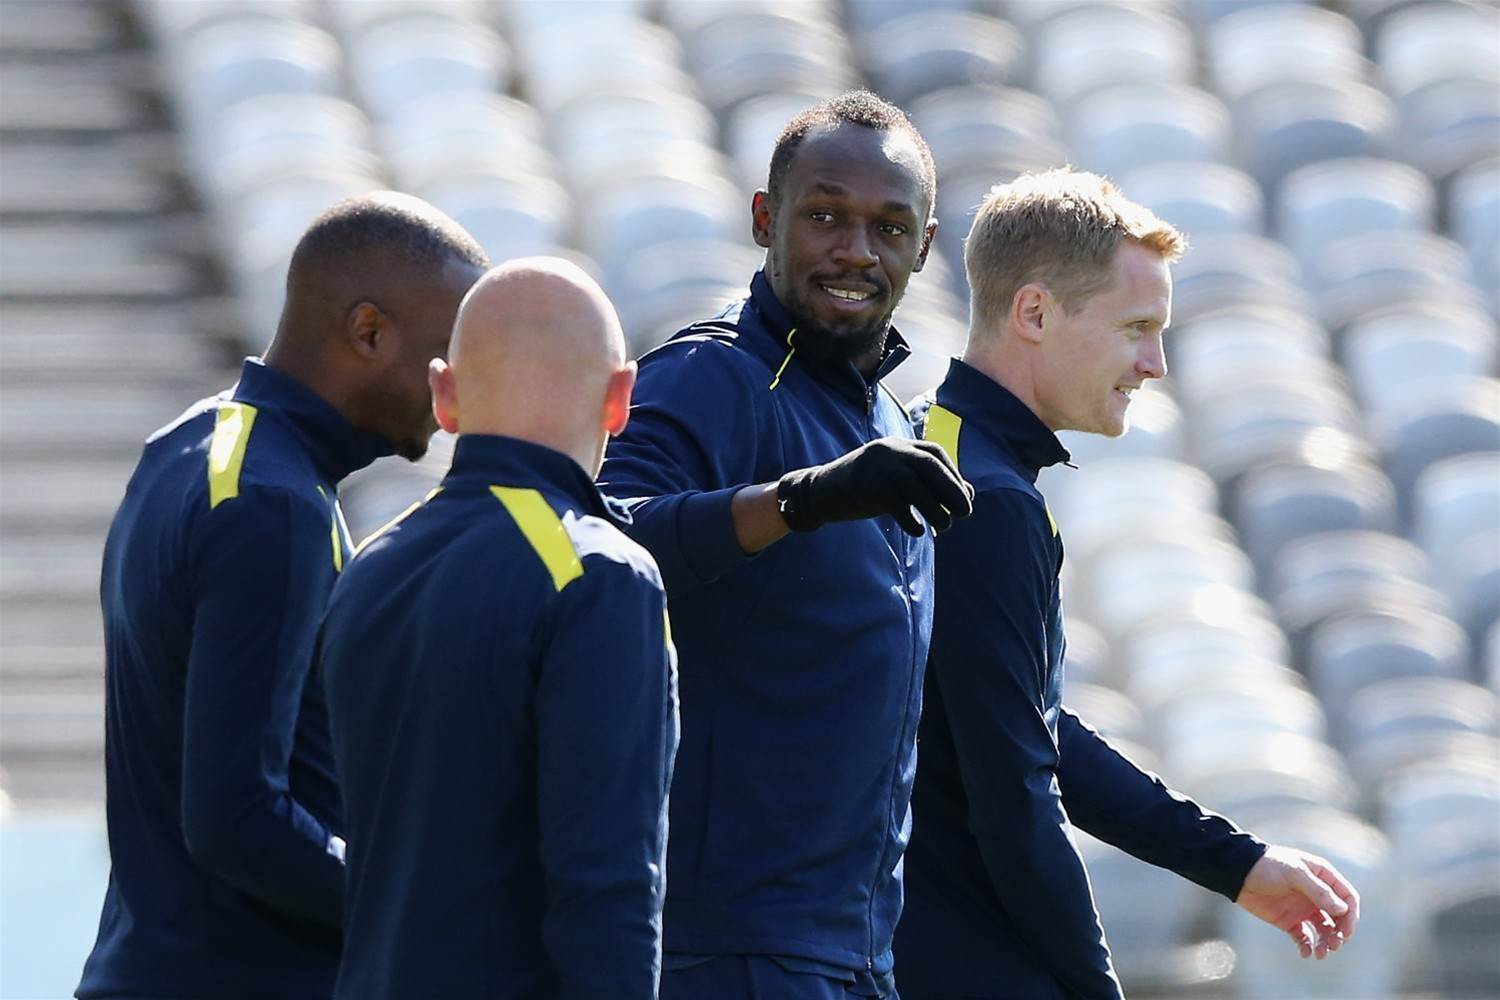 Pics: Usain Bolt attends first training session with Mariners